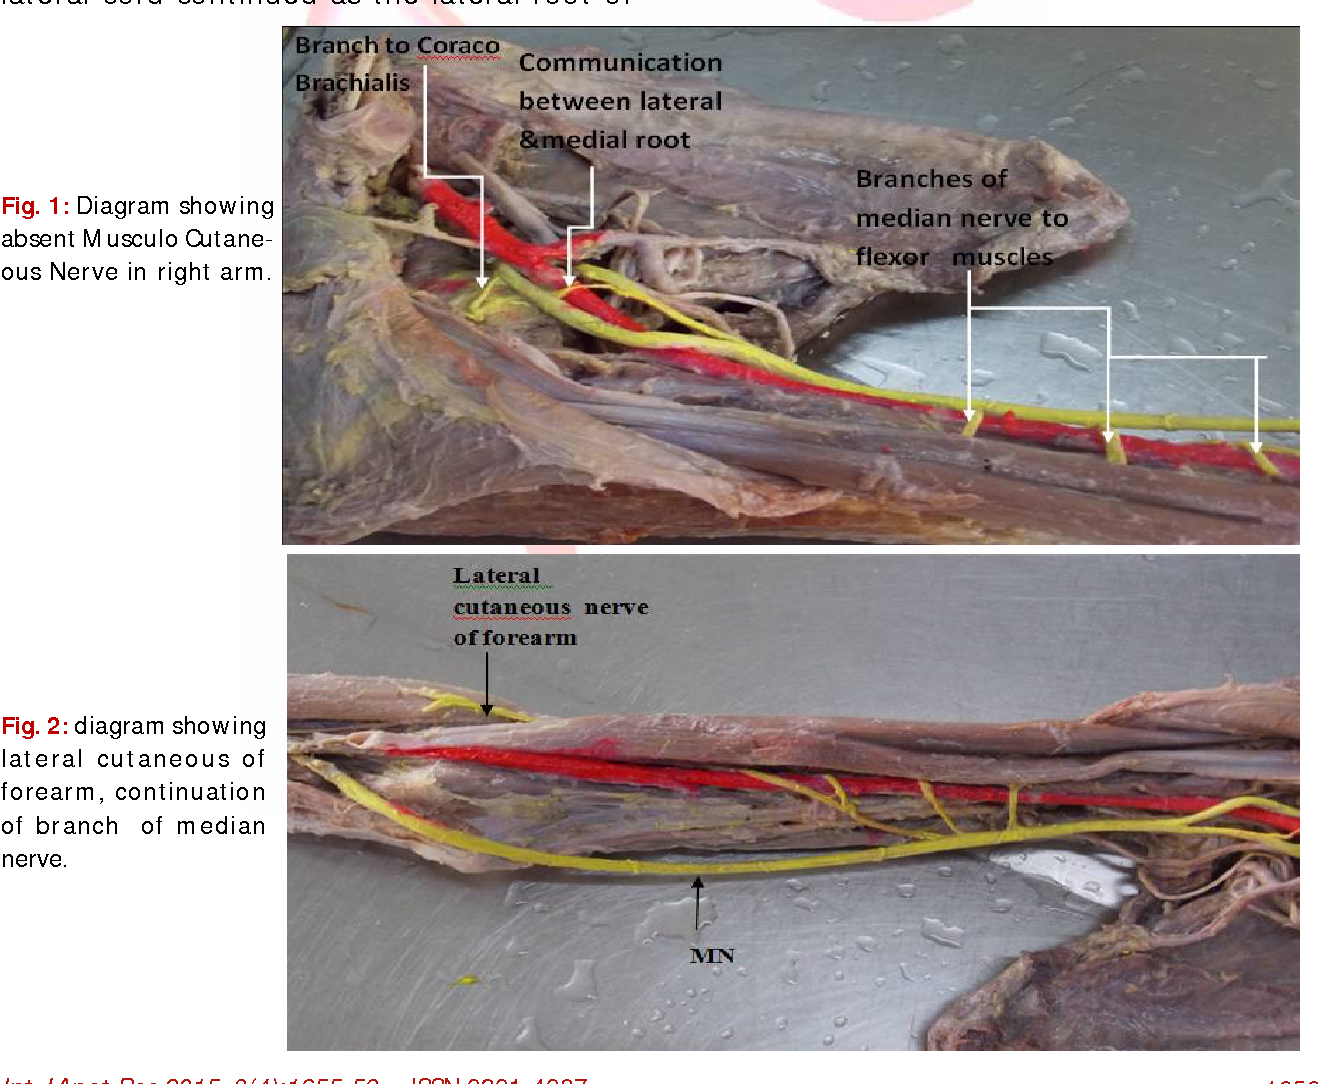 Bilateral Multiple Variations In The Upper Extremity Of A Human